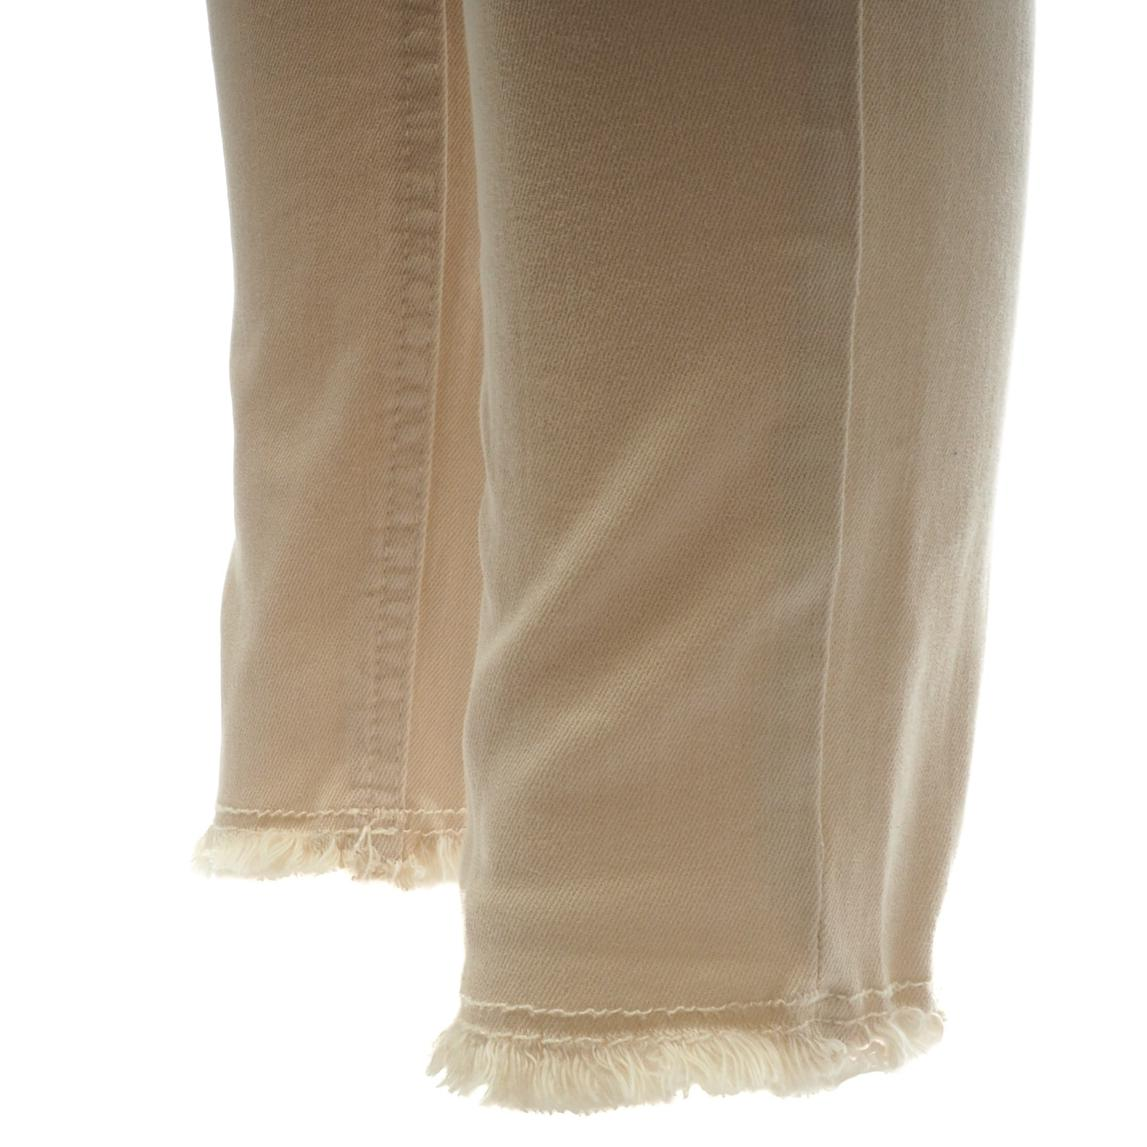 Trousers-Slim-Jeans-only-Blush-32-Egret-Jeans-L-Beige-18666-New thumbnail 4